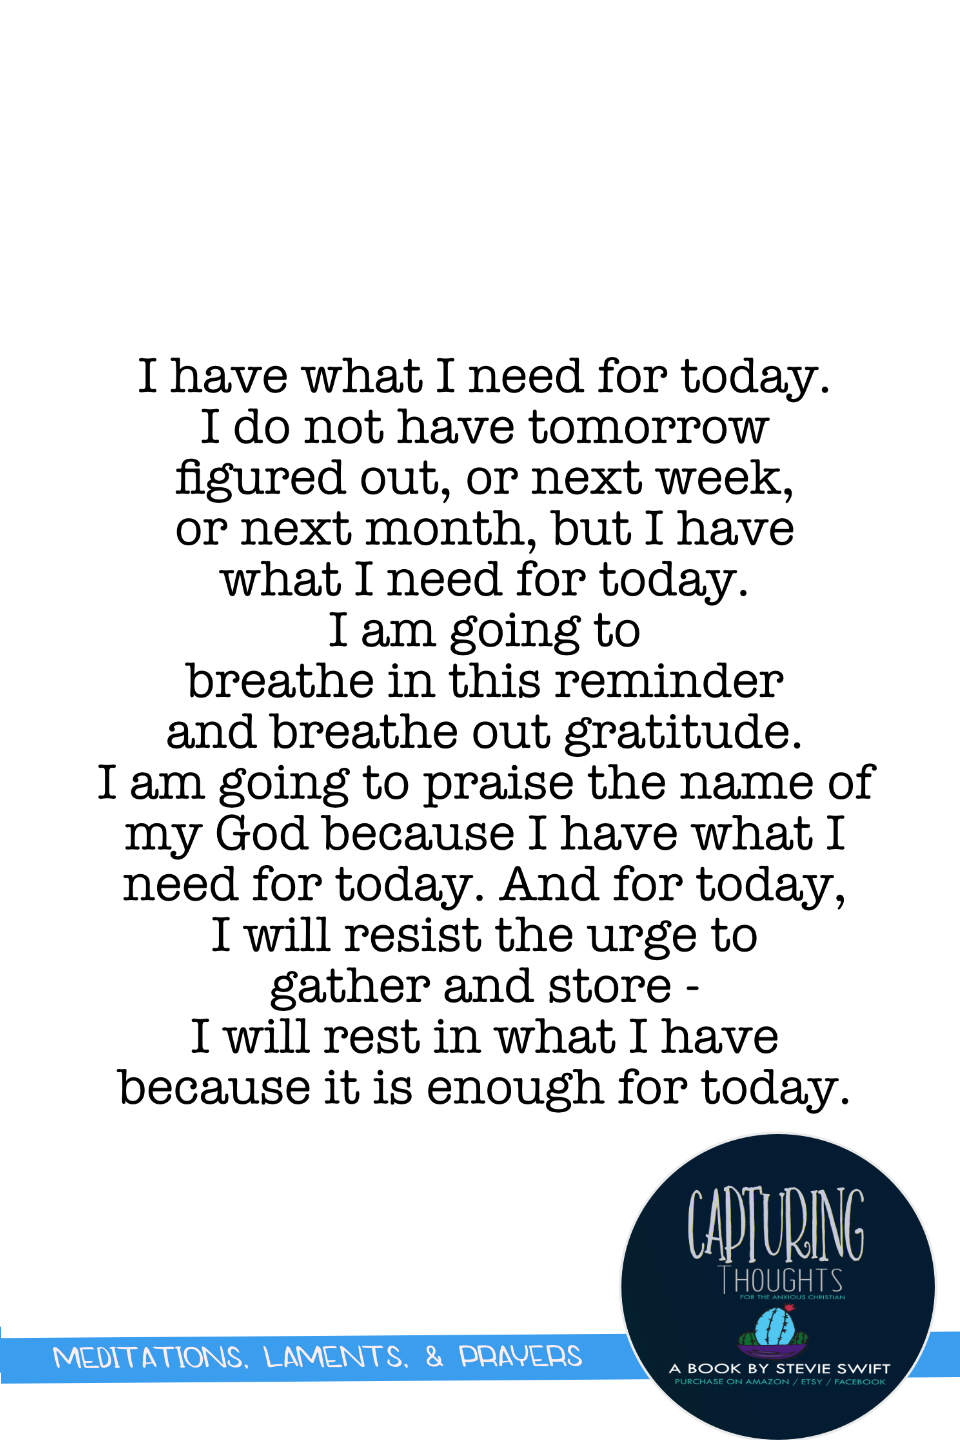 i have what i need for today. i do not have tomorrow figured out, or next week, or next month, but i have what i need for today. i am going to breathe in this reminder and breath out gratitude. i am going to praise the name of my god because i have what i need for today.